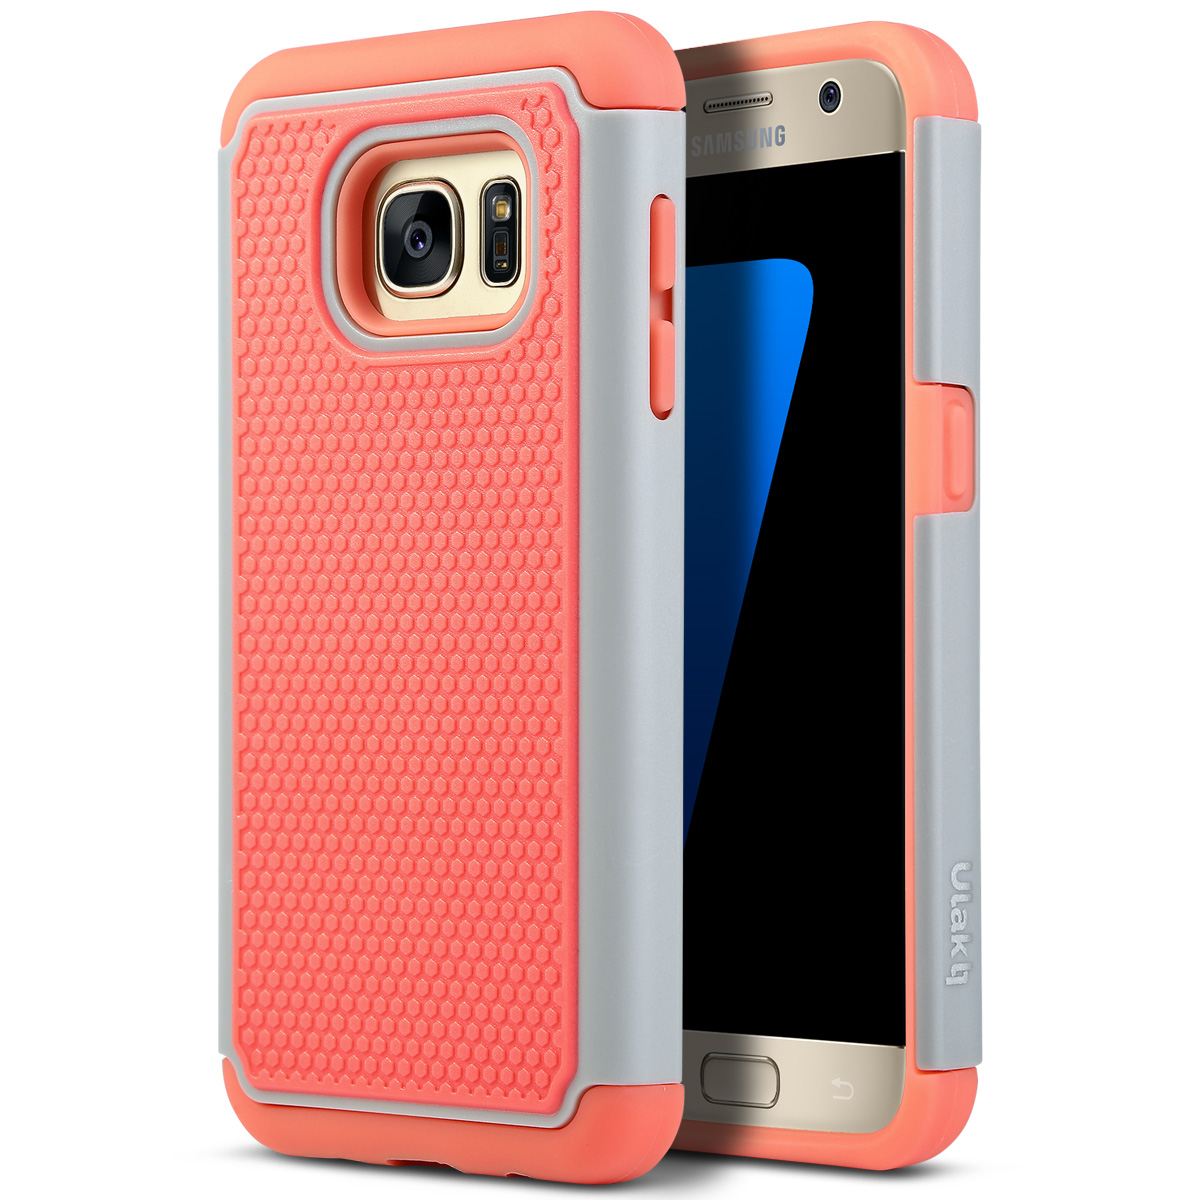 Galaxy S7 Case, ULAK Hybrid Slim Dual Layer Protective Case Cover with Soft Silicone and Hard PC for Samsung Galaxy S7 2016 Release